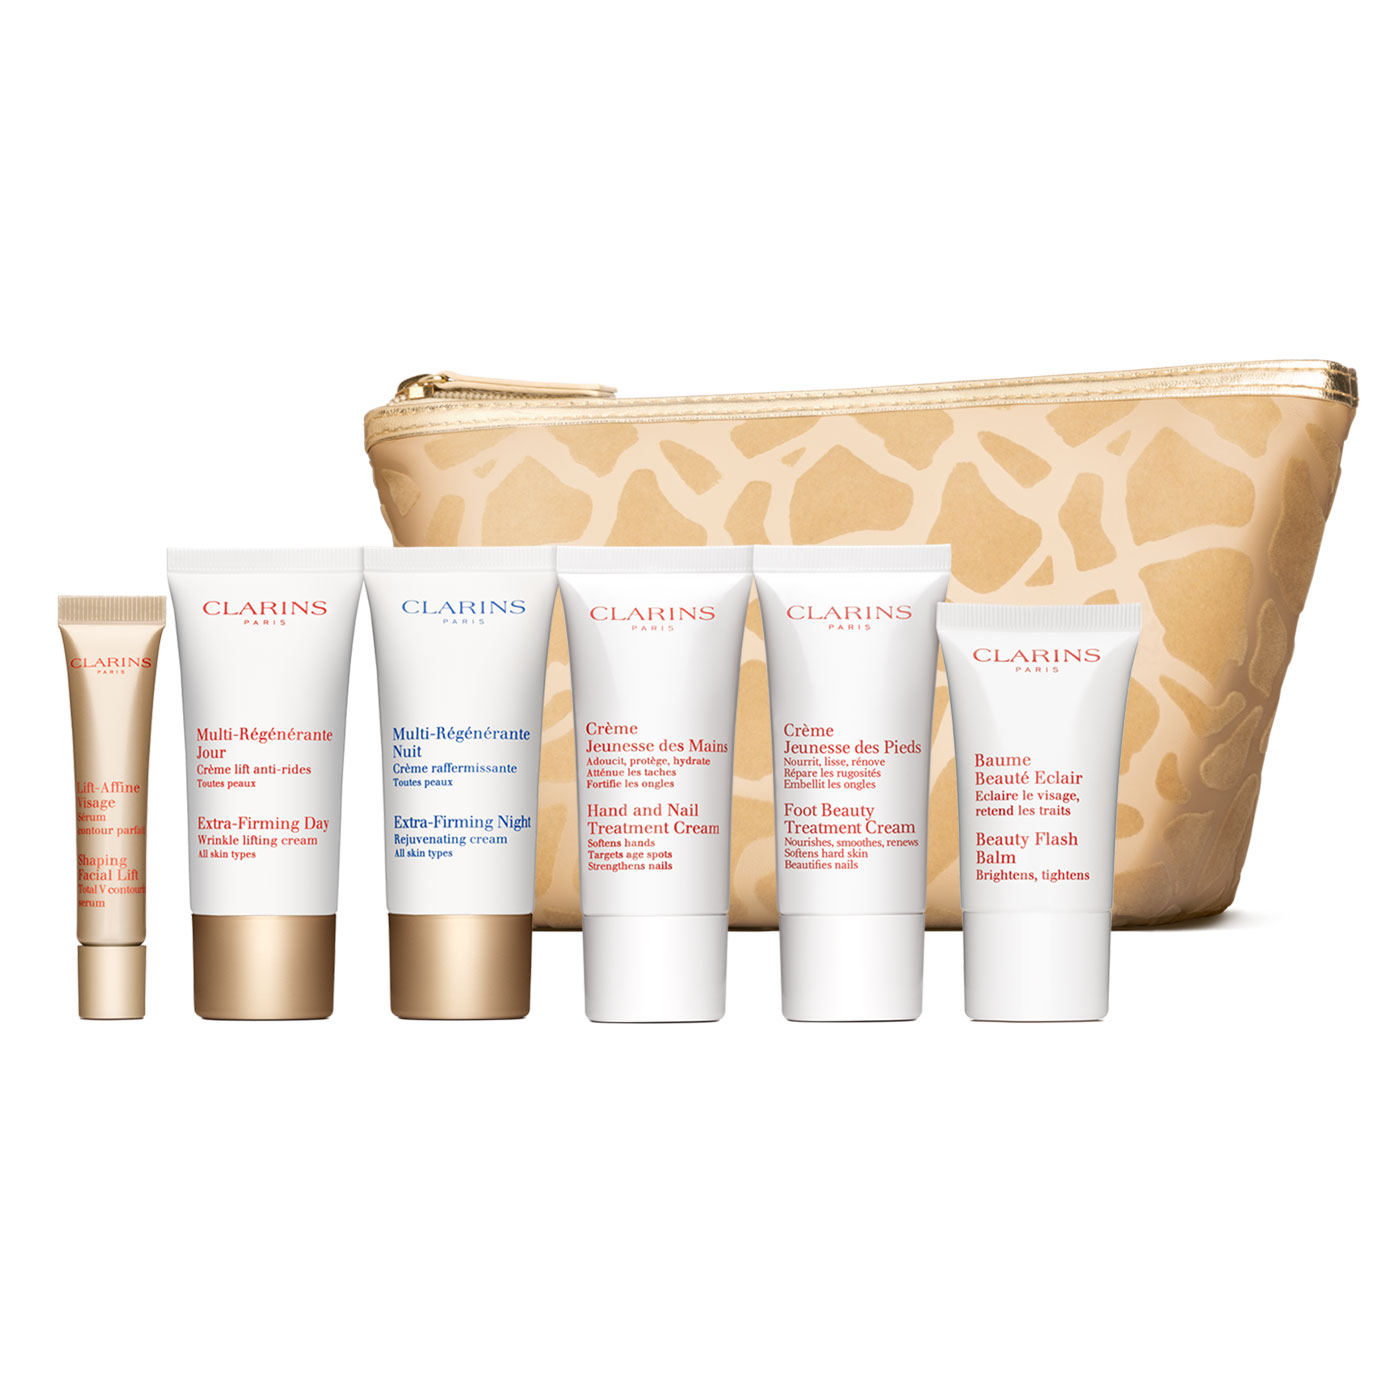 Free 7pc Gift ($160 Value) with All Orders over $50 @ Clarins, Early Access Exclusive to Dealmoon